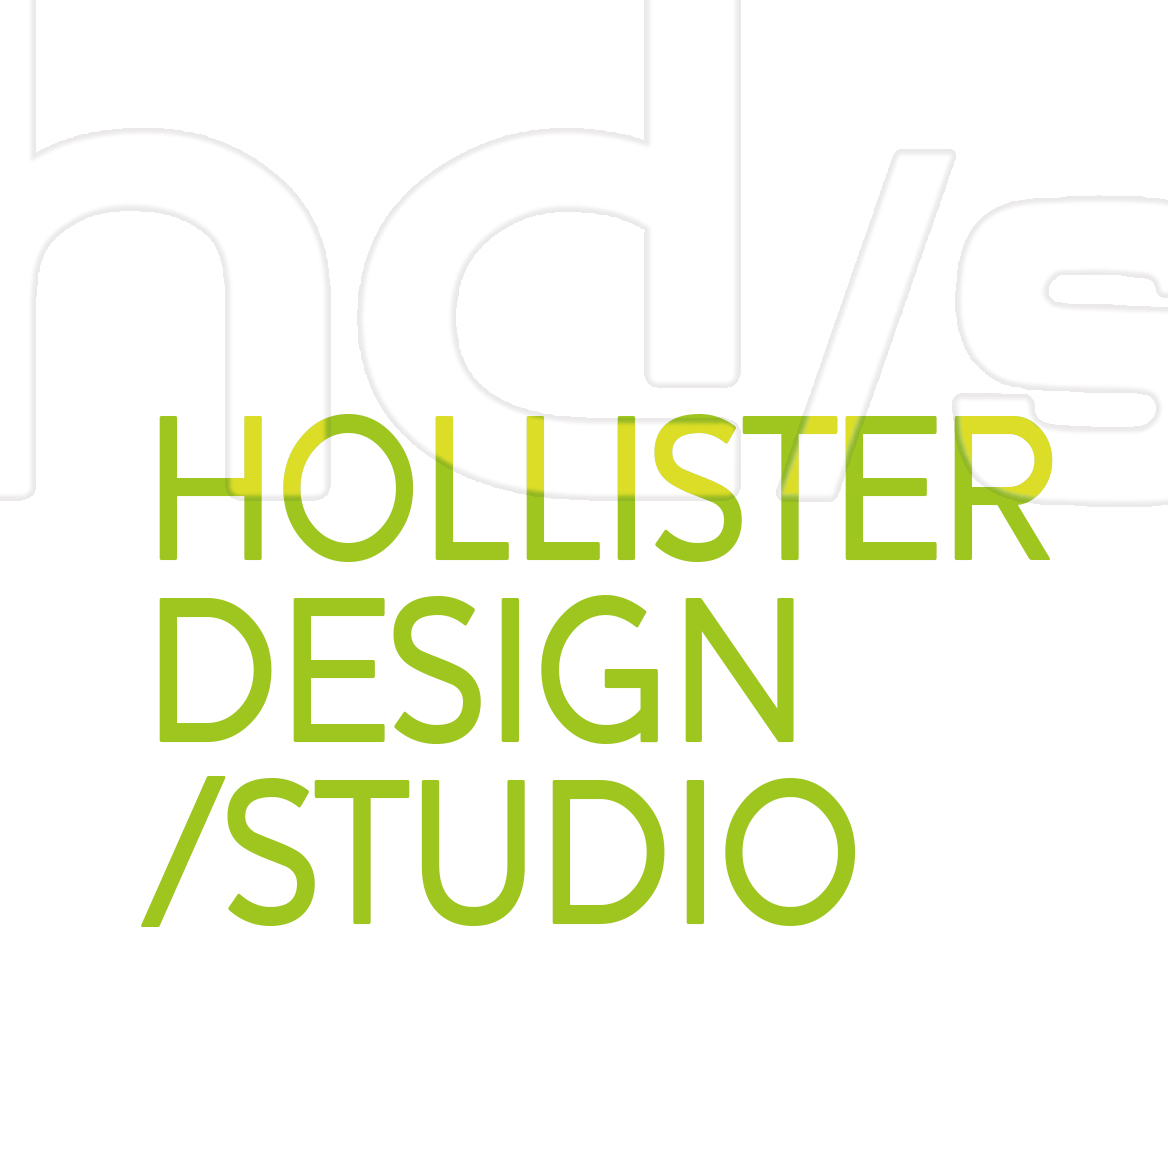 hollister design studio